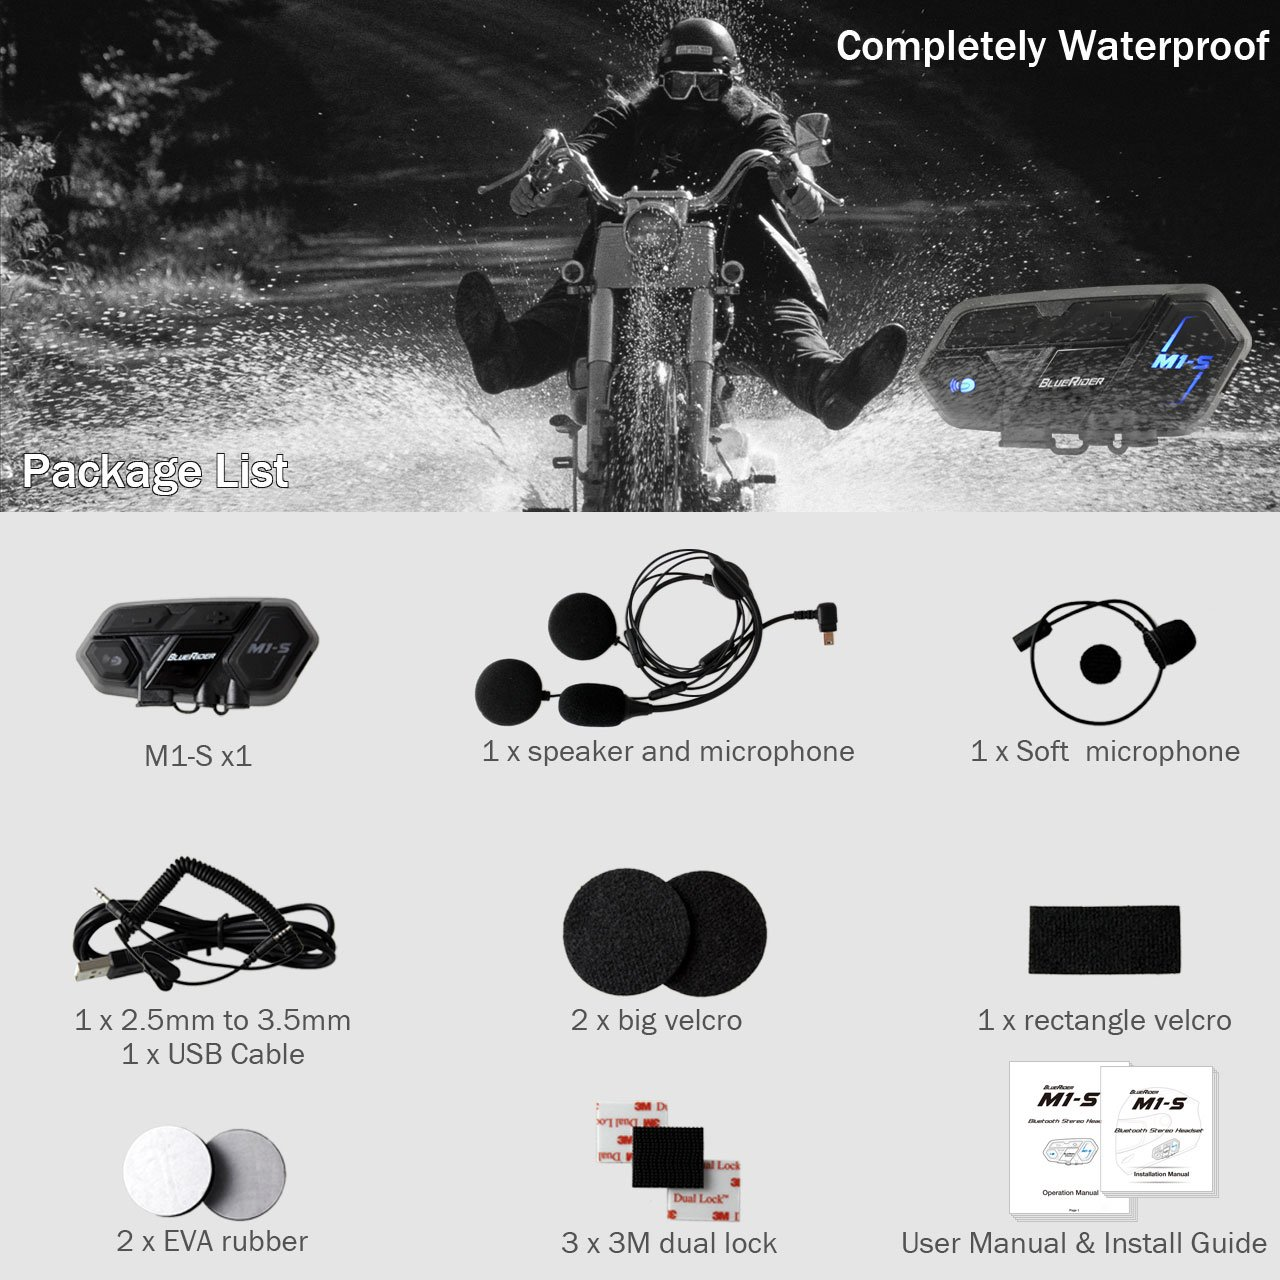 Motorcycle Bluetooth 4.1 Helmet Headset and Intercom Communication Systems Kit, Supports 8 riders group intercom, Handsfree Calls Voice Command 12hrs with Speakers headphones for Motorbike Skiing by BIBENE (Image #7)